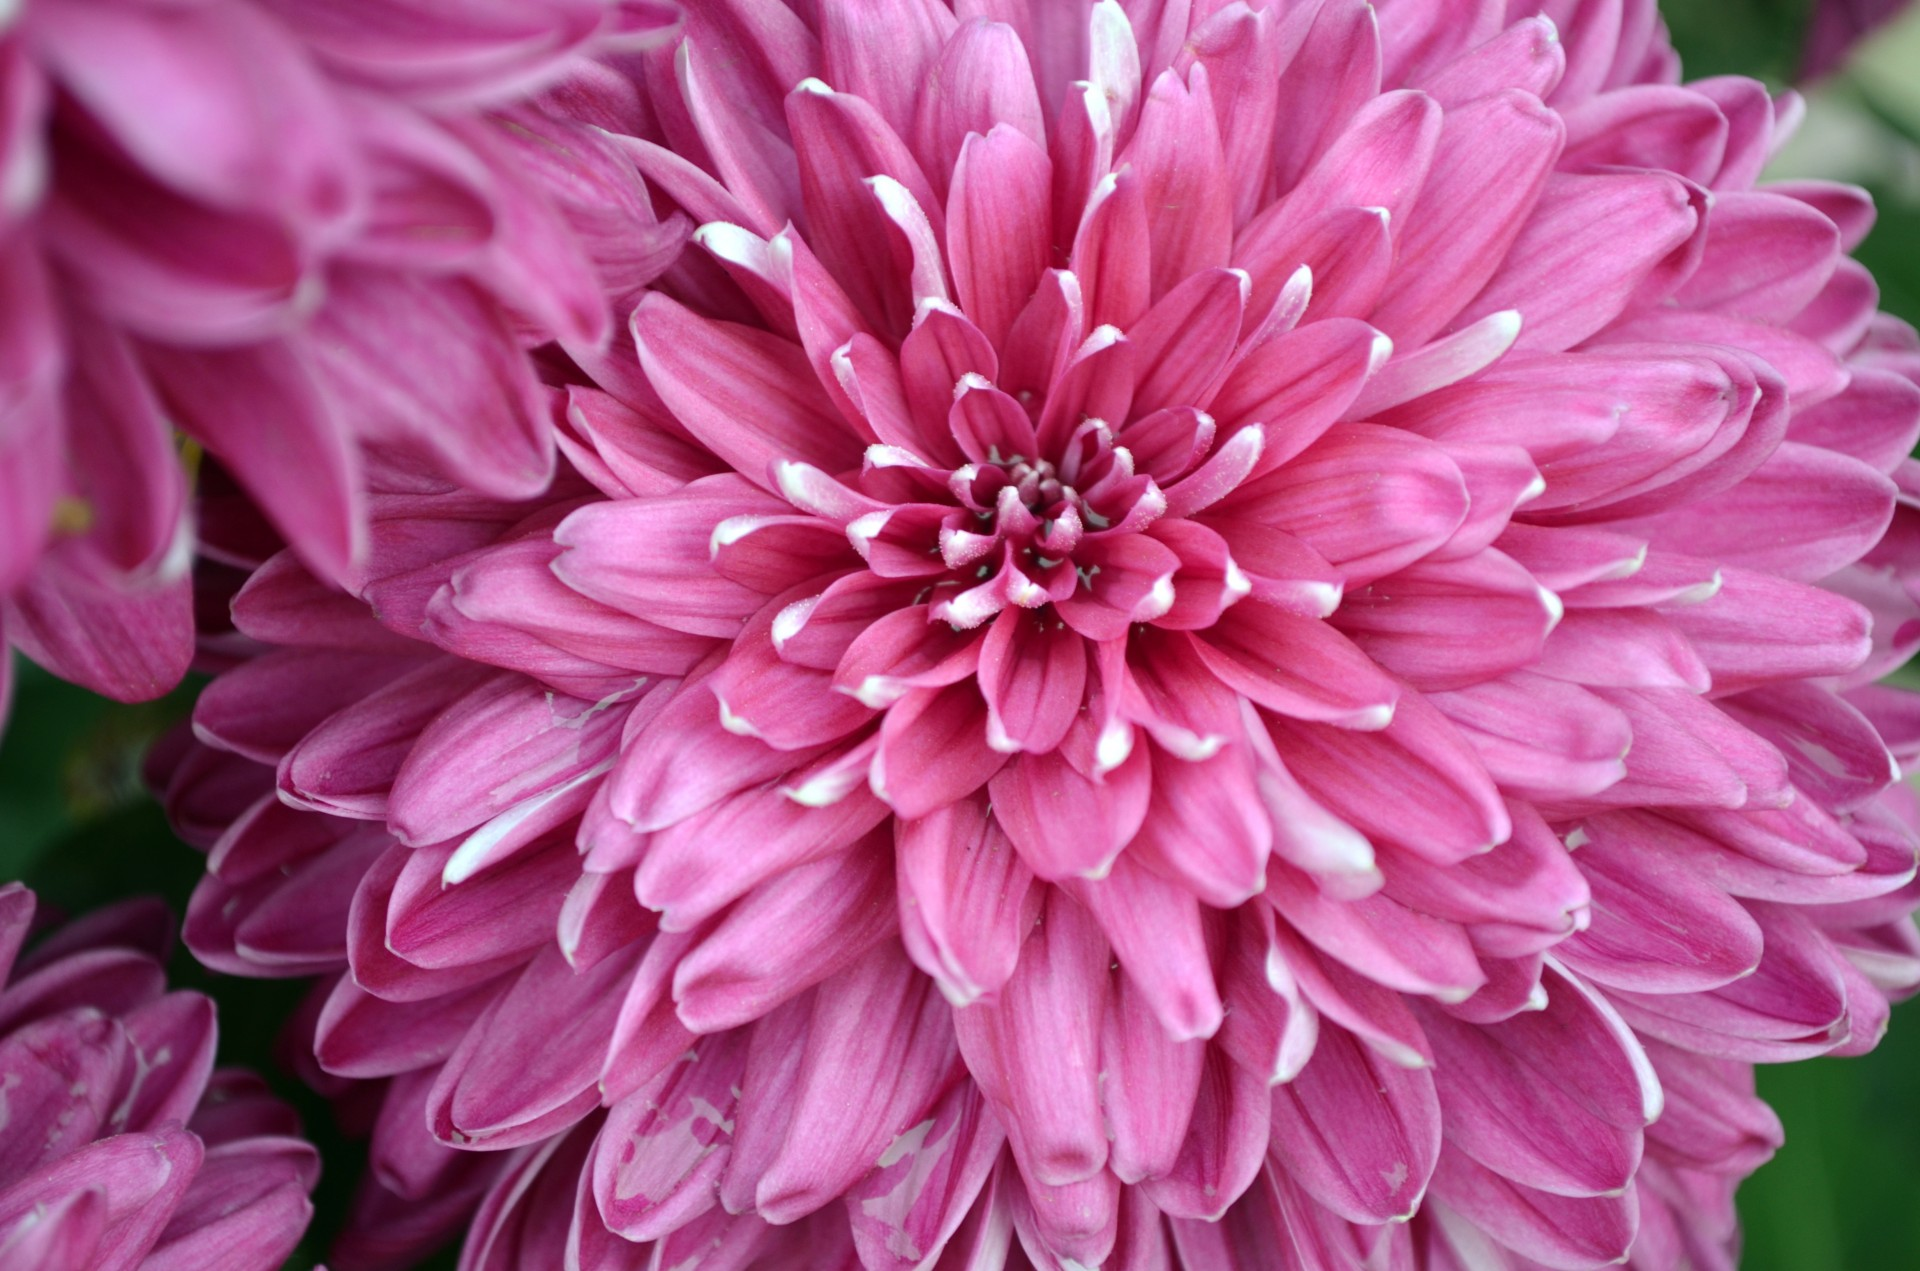 Fall Flowers Wallpaper Free Pink Mums Free Stock Photo Public Domain Pictures